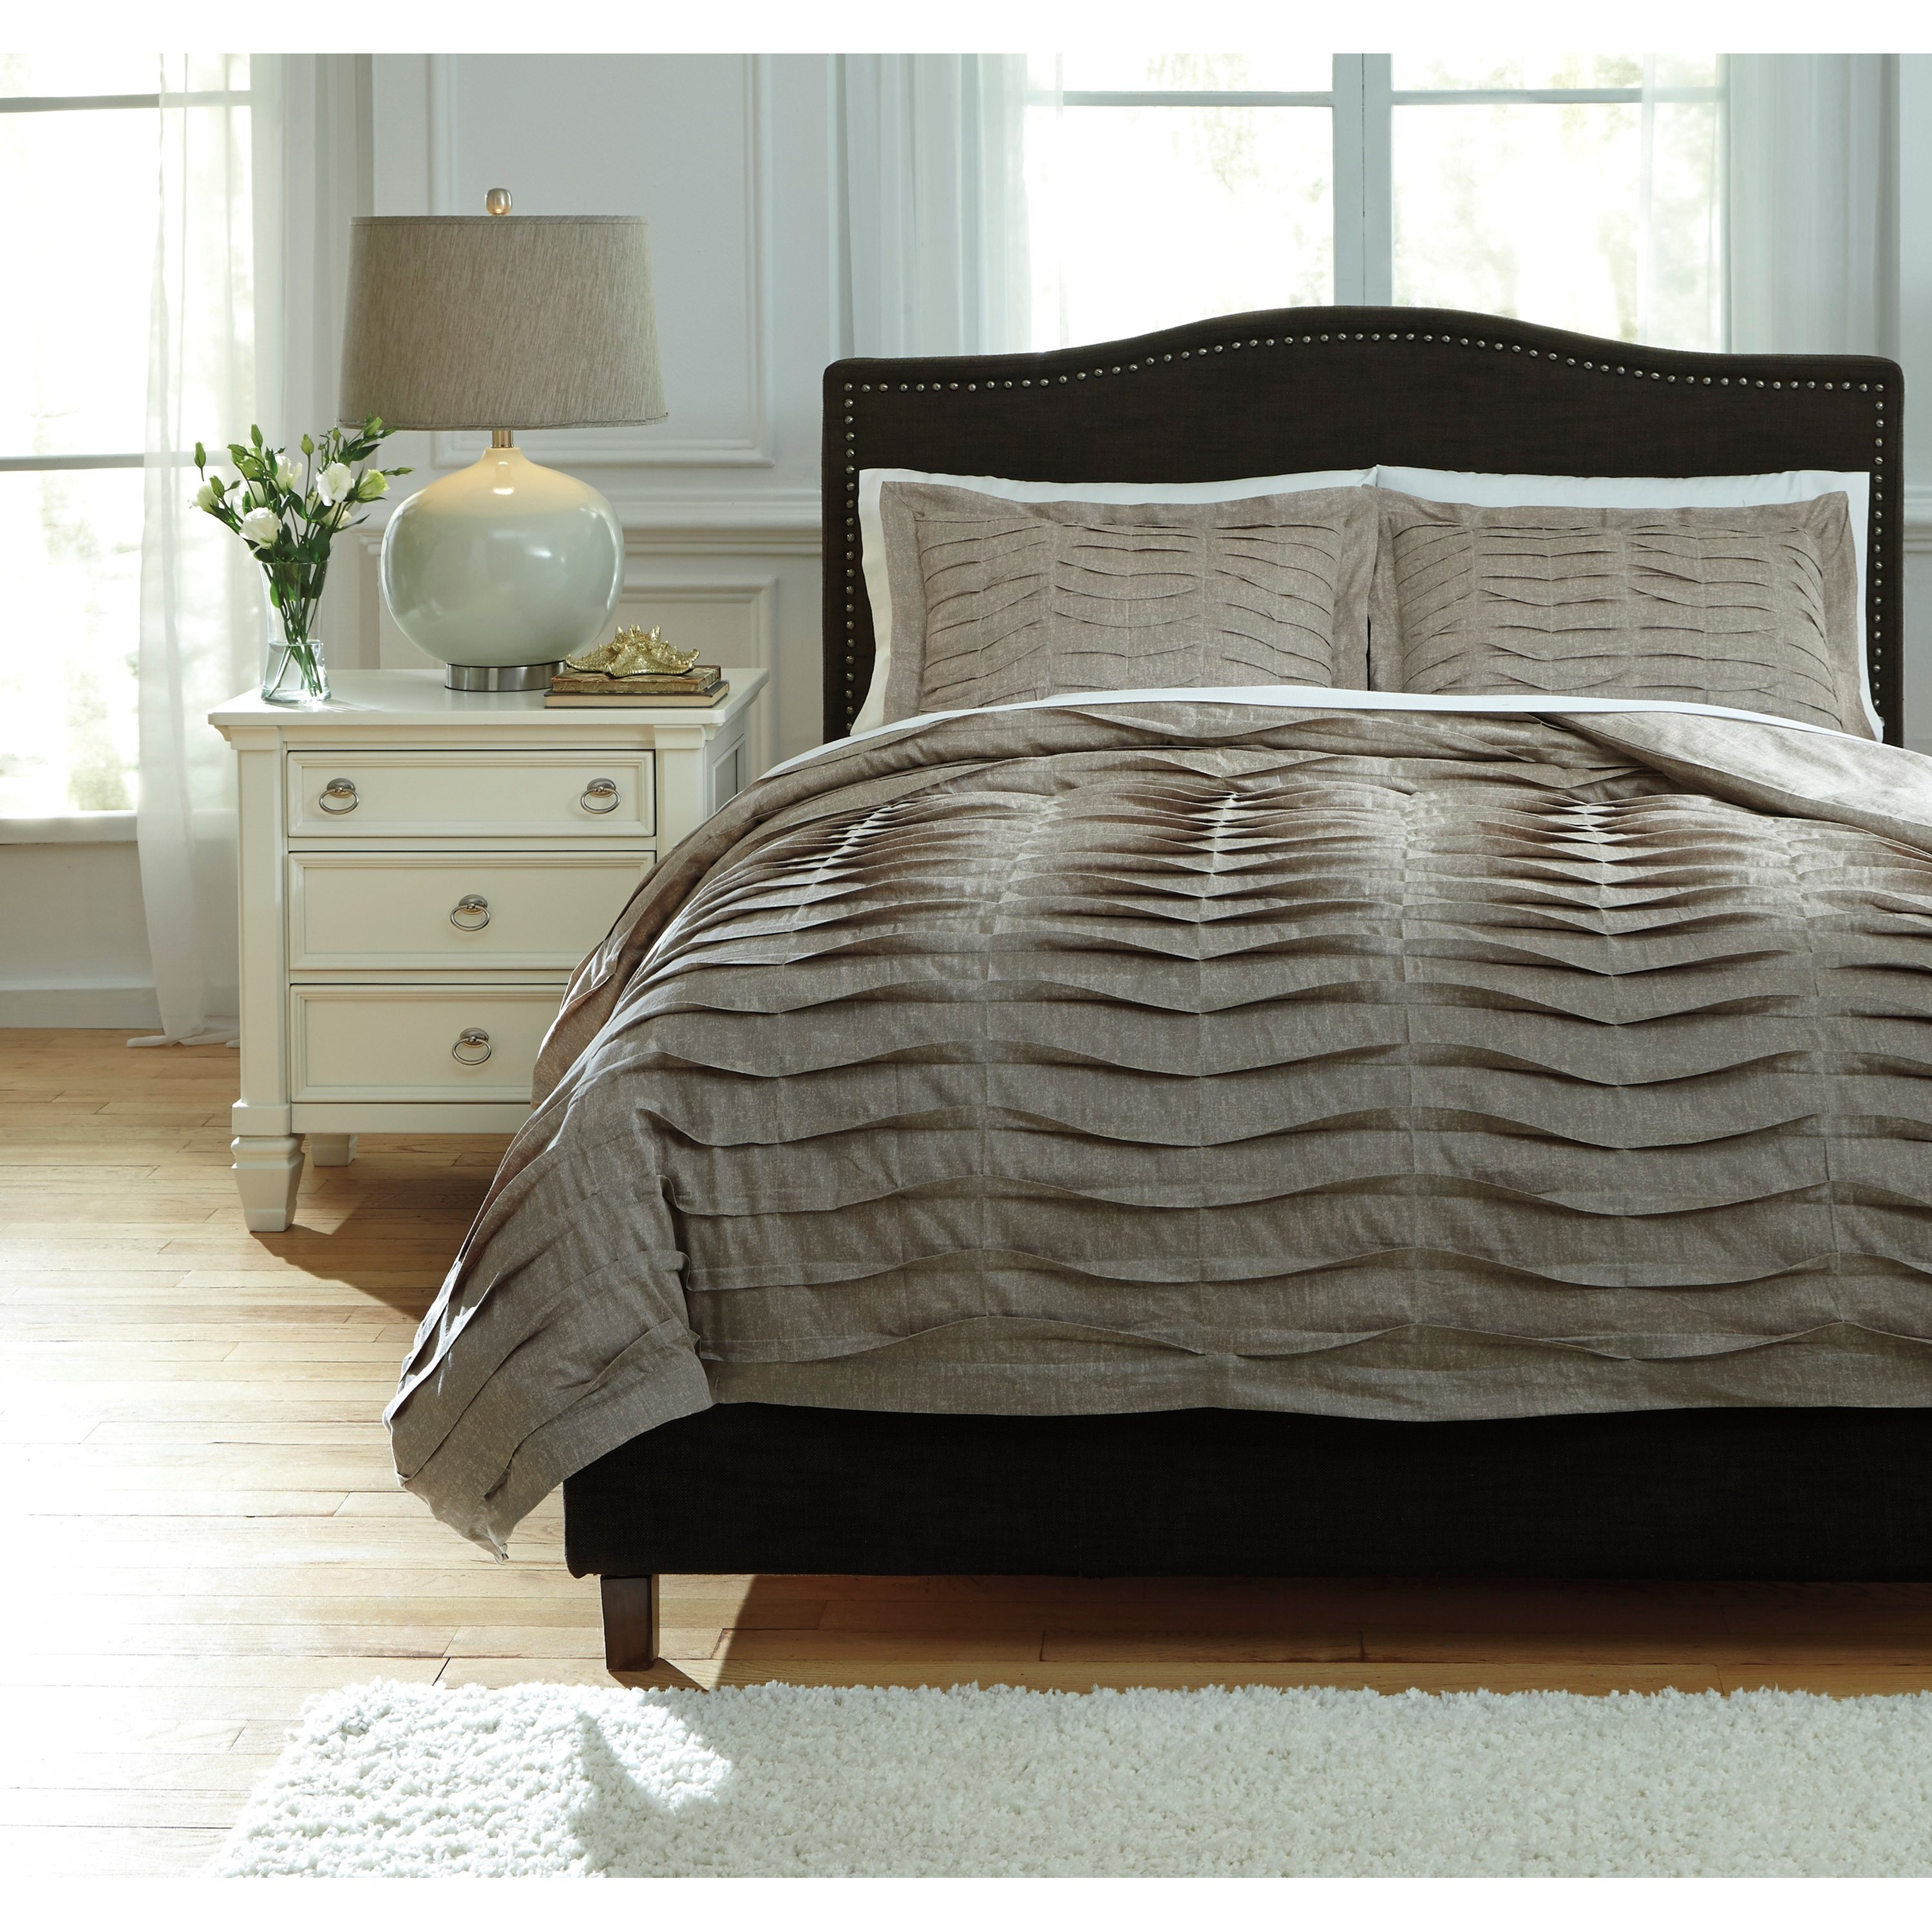 Brown bedding sets queen - Signature Design By Ashley Bedding Sets Queen Voltos Brown Duvet Cover Set Item Number